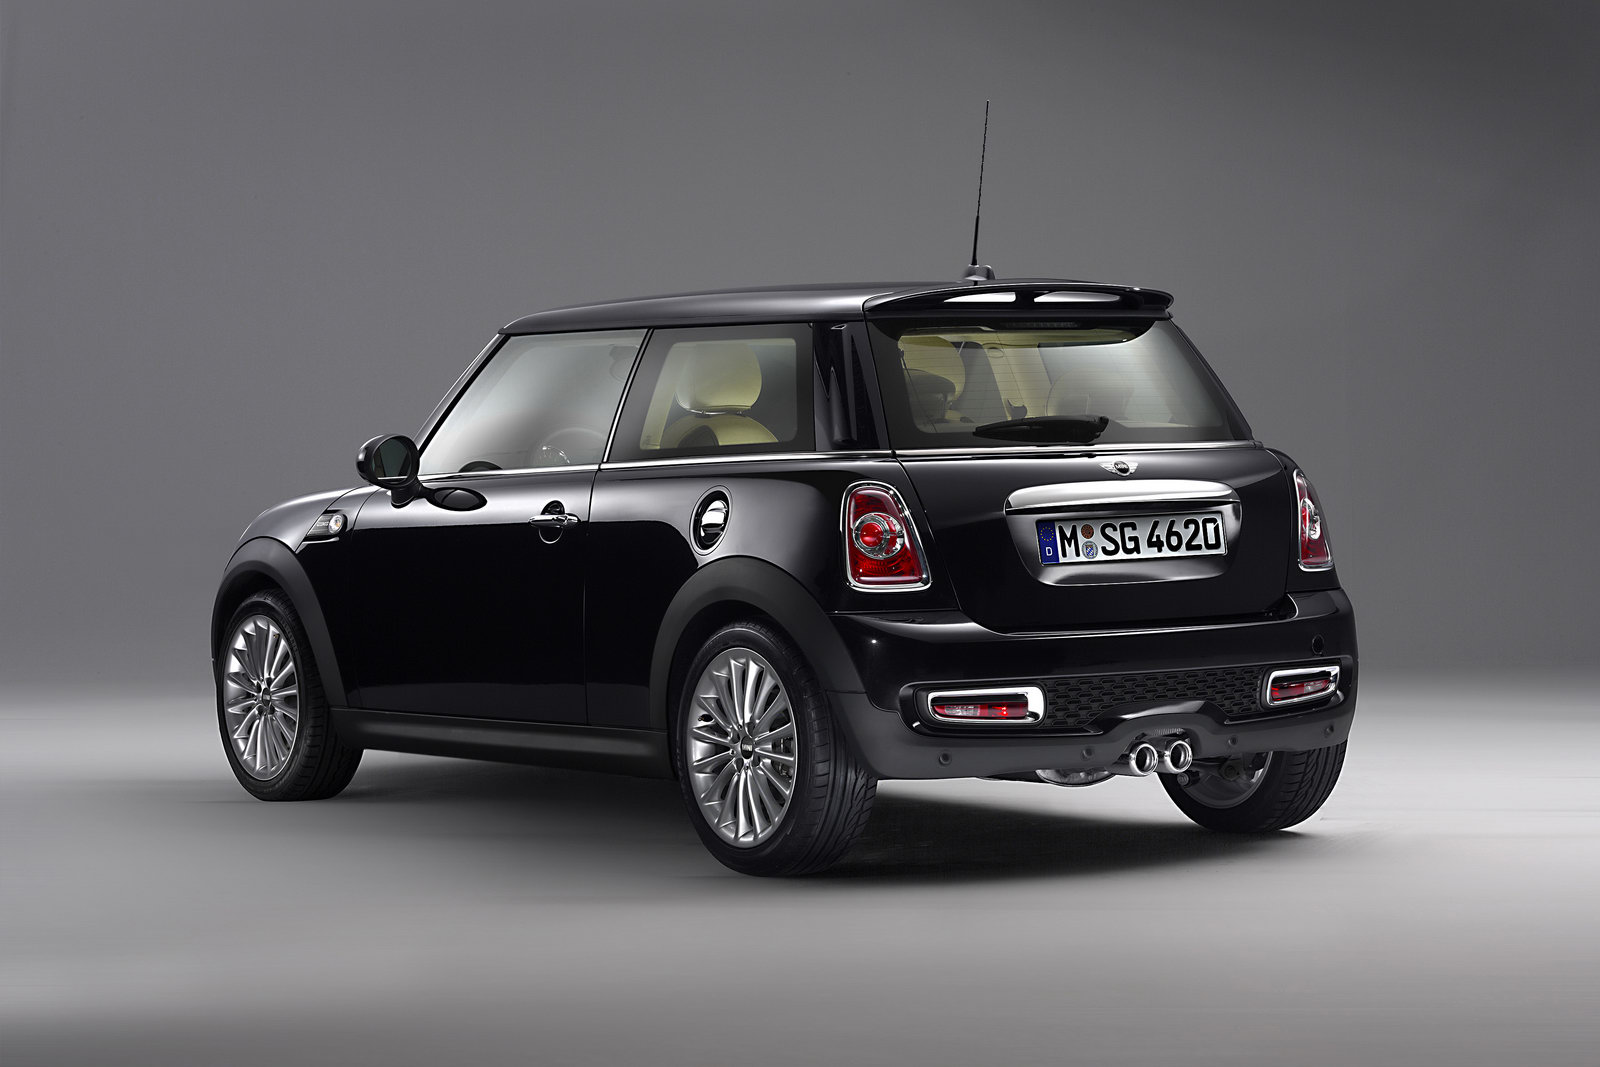 MINI Inspired By Goodwood 20 Rolls Royce Upgraded Mini with Hatchback Option